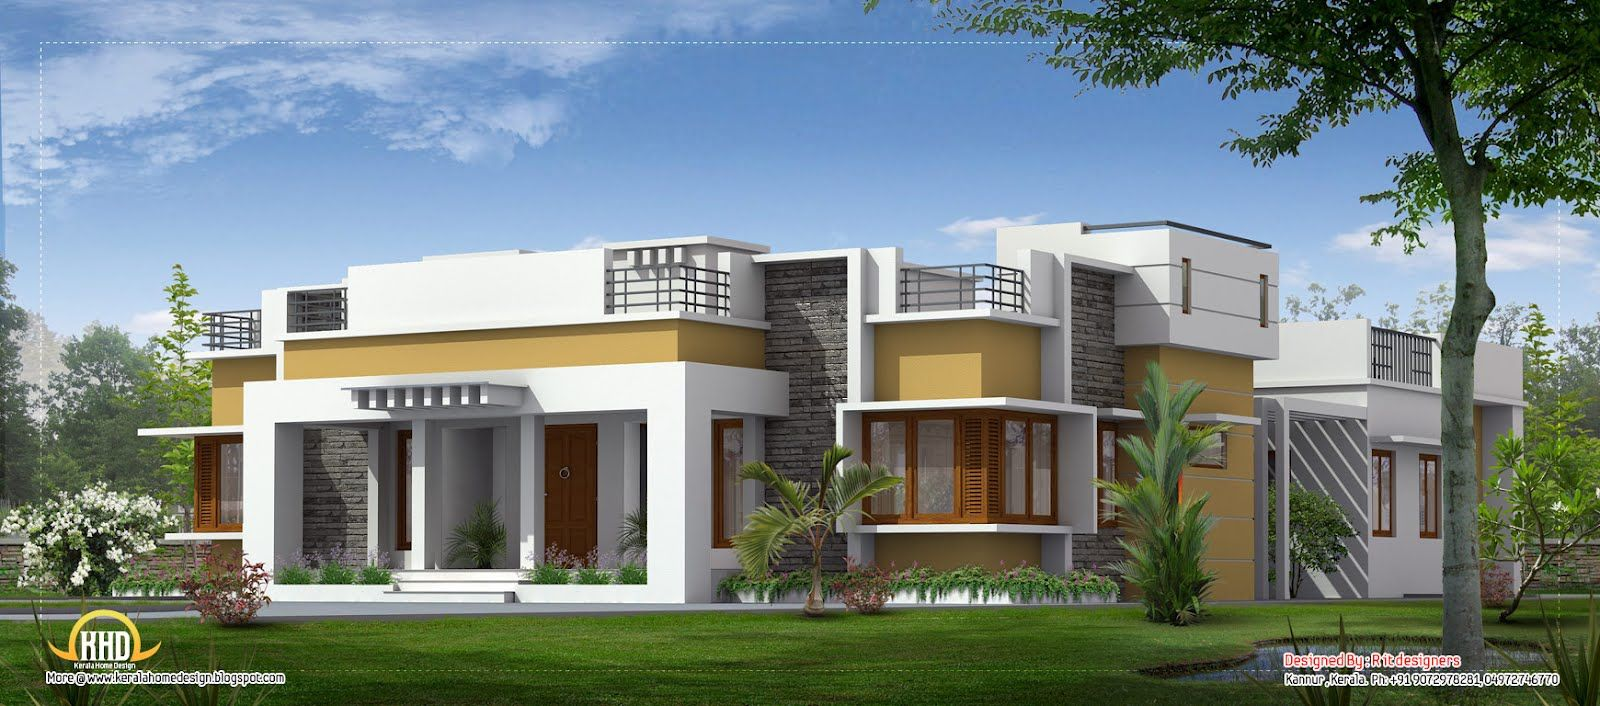 Single level designer home single floor house plans for Looking for house plans